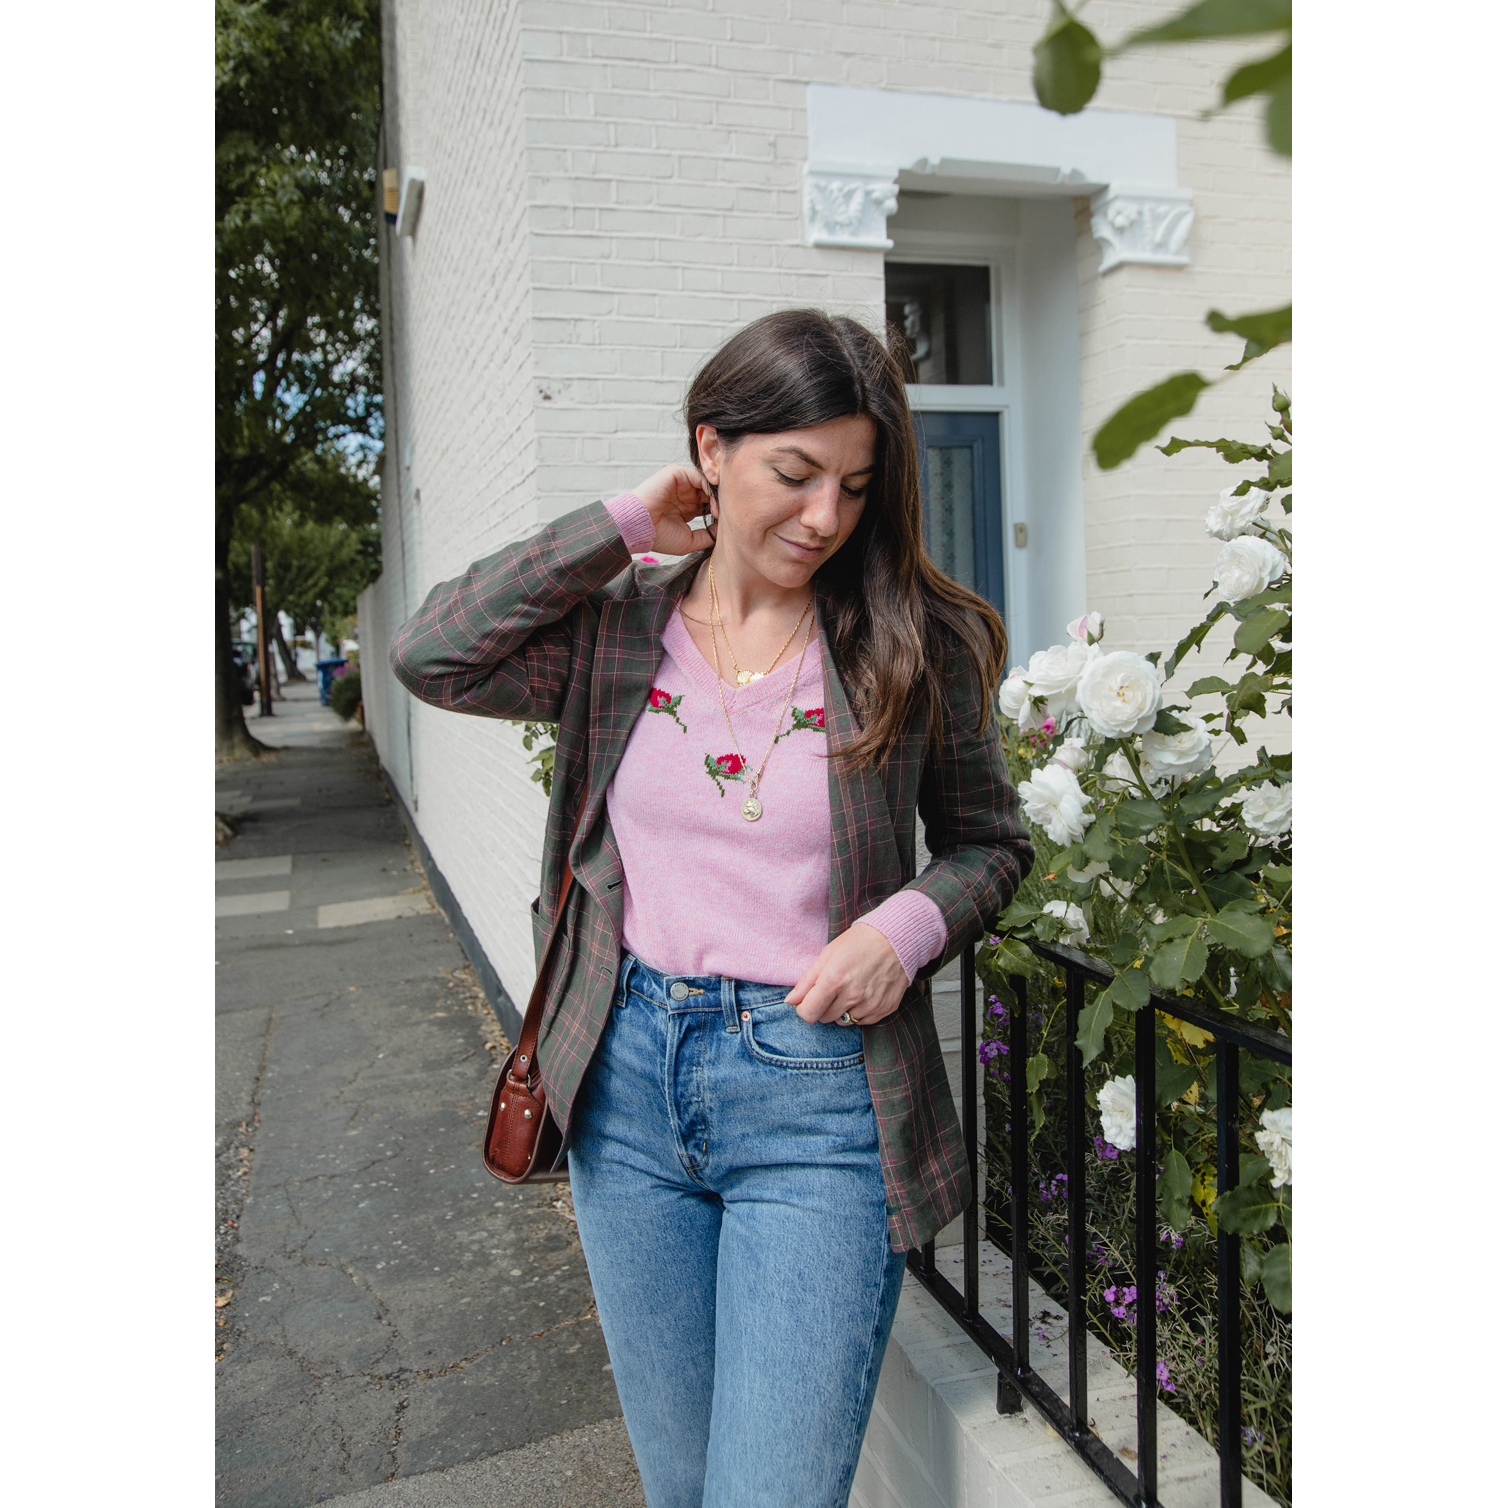 Fran styled our Rose jumper with a blazer and high waisted jeans - with the all essential button fly!